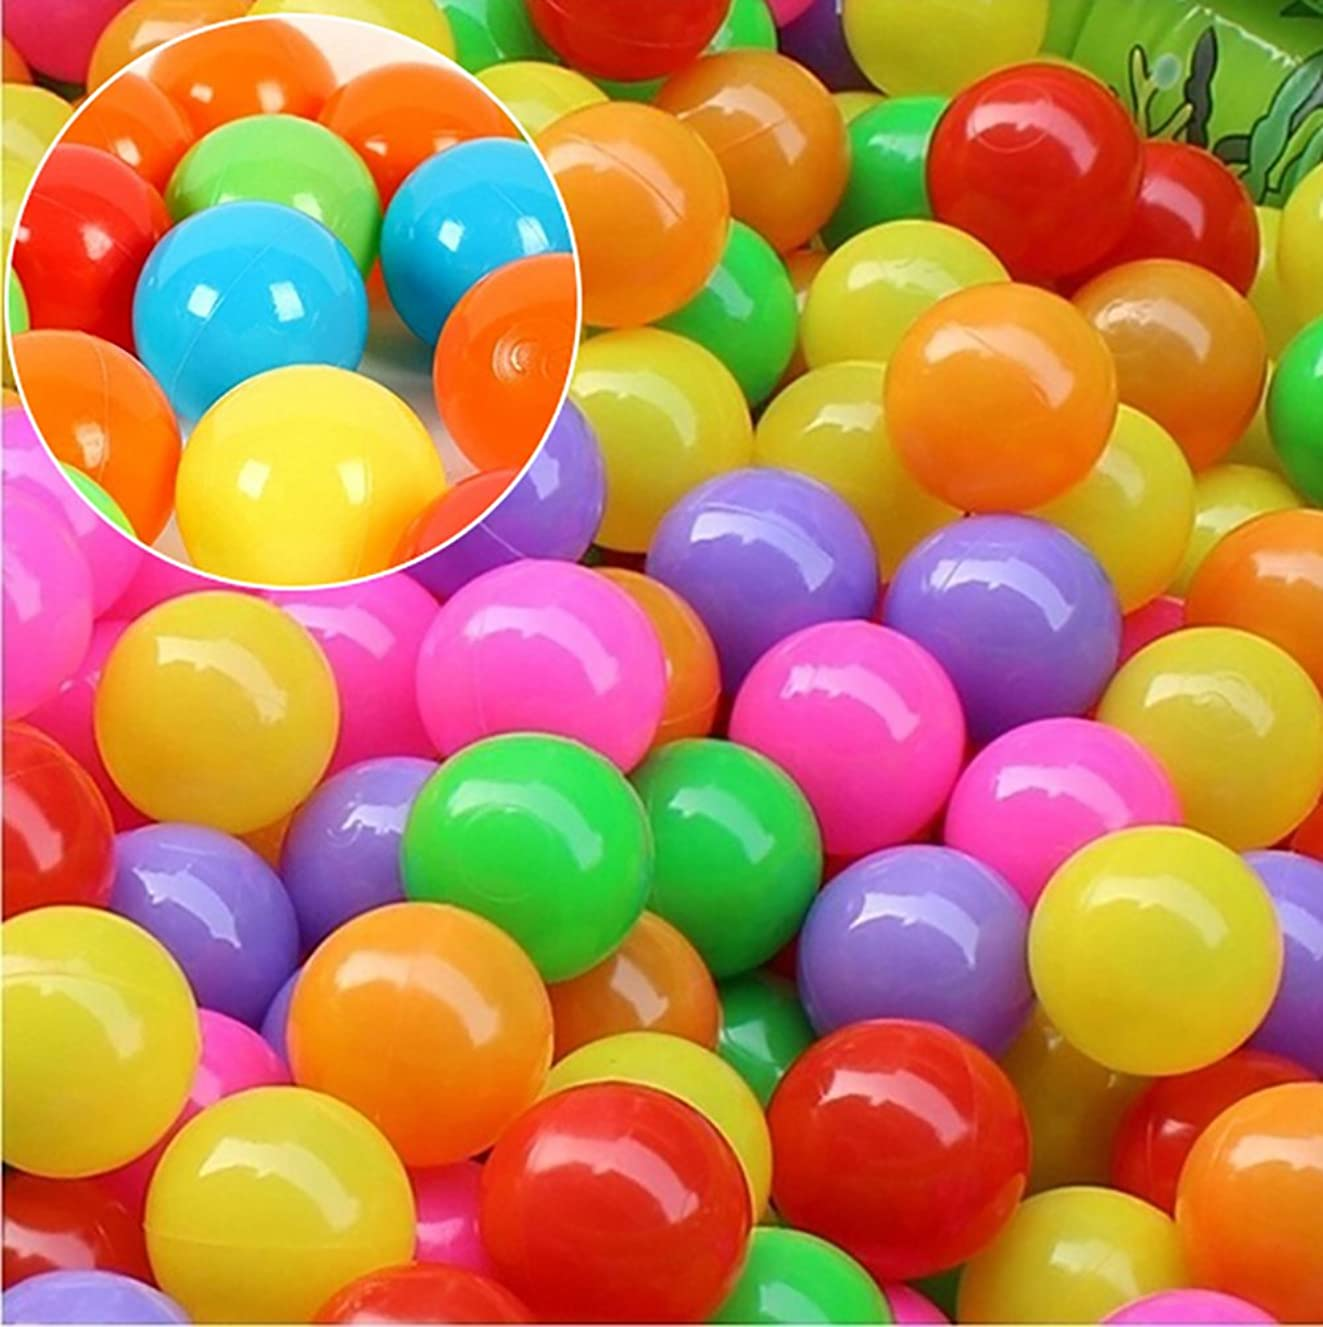 ink2055 50 Pcs Baby Colorful Soft Plastic Water Pool Ocean Wave Ball Outdoor Funny Toys - 4 cm